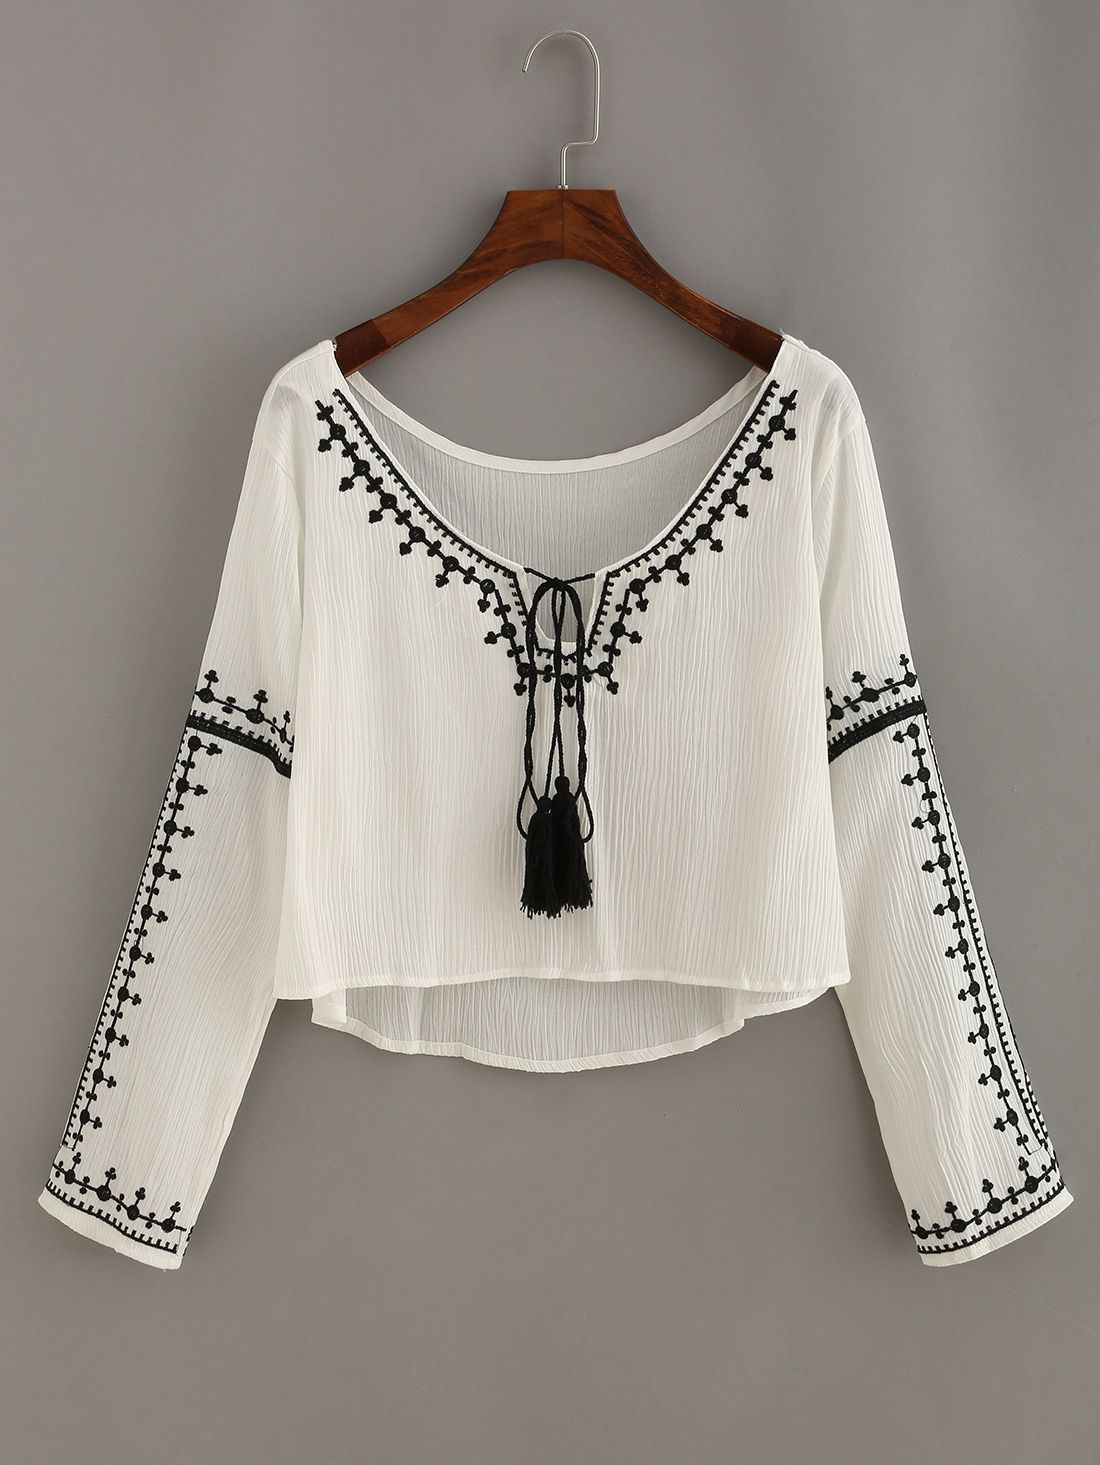 ef1aa974f8963 Shop Embroidery Tassel-Tie Neck High Low Blouse online. SheIn offers  Embroidery Tassel-Tie Neck High Low Blouse   more to fit your fashionable  needs.